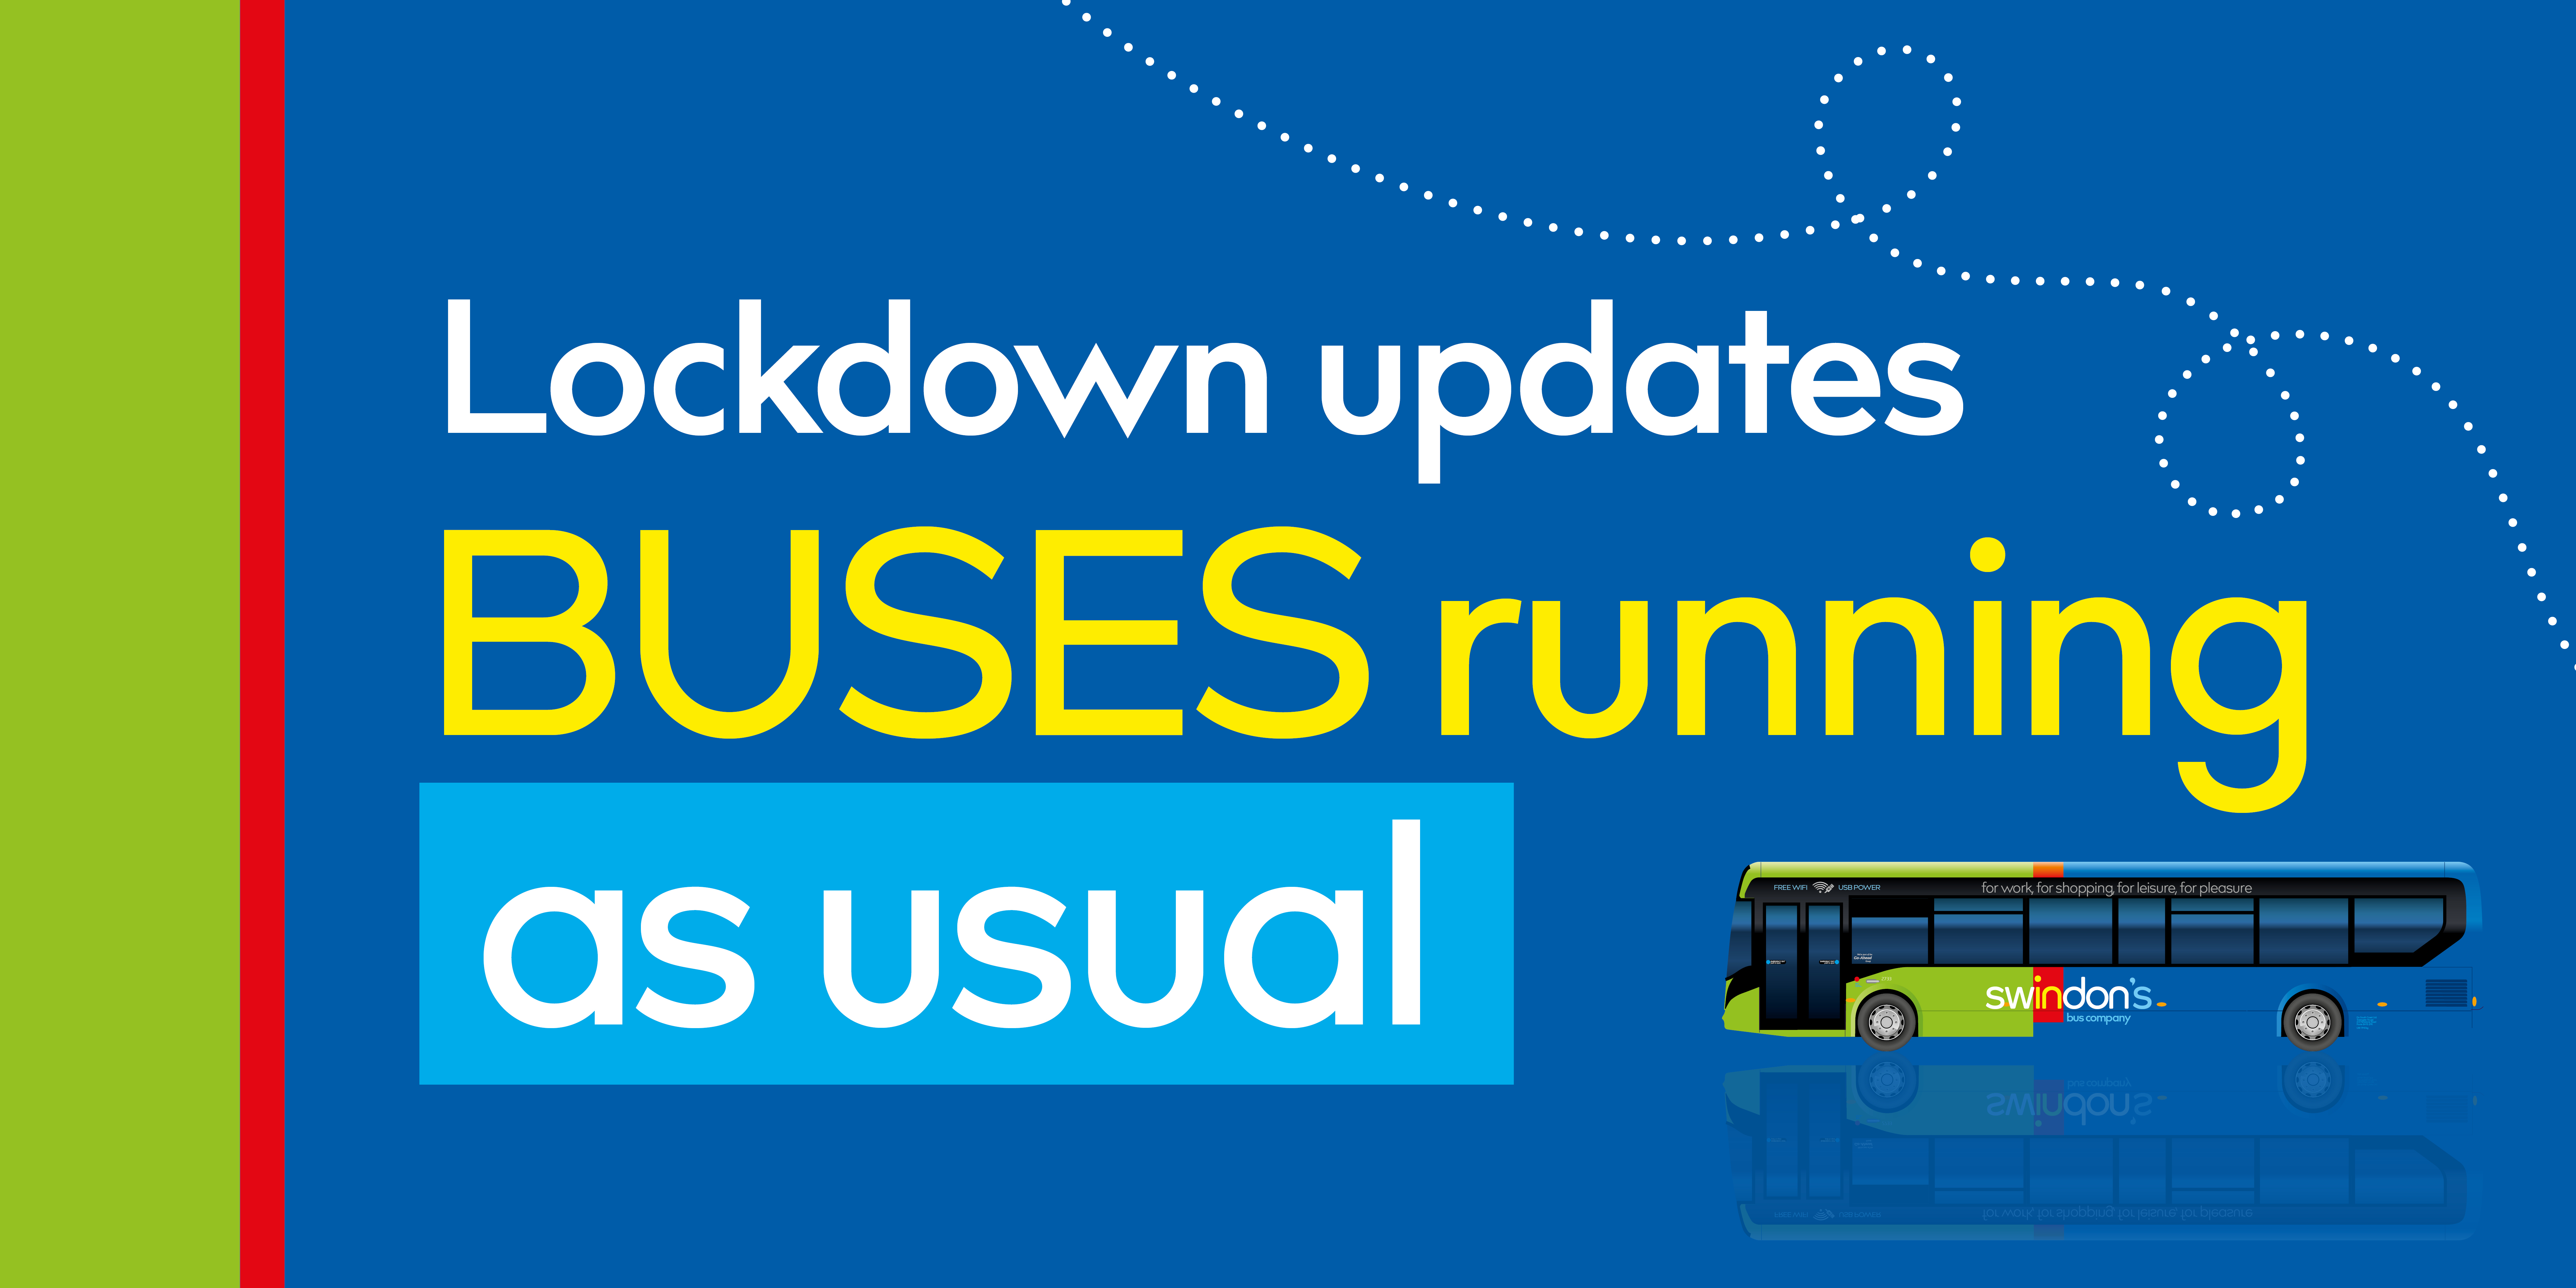 Swindon Bus lockdown 3